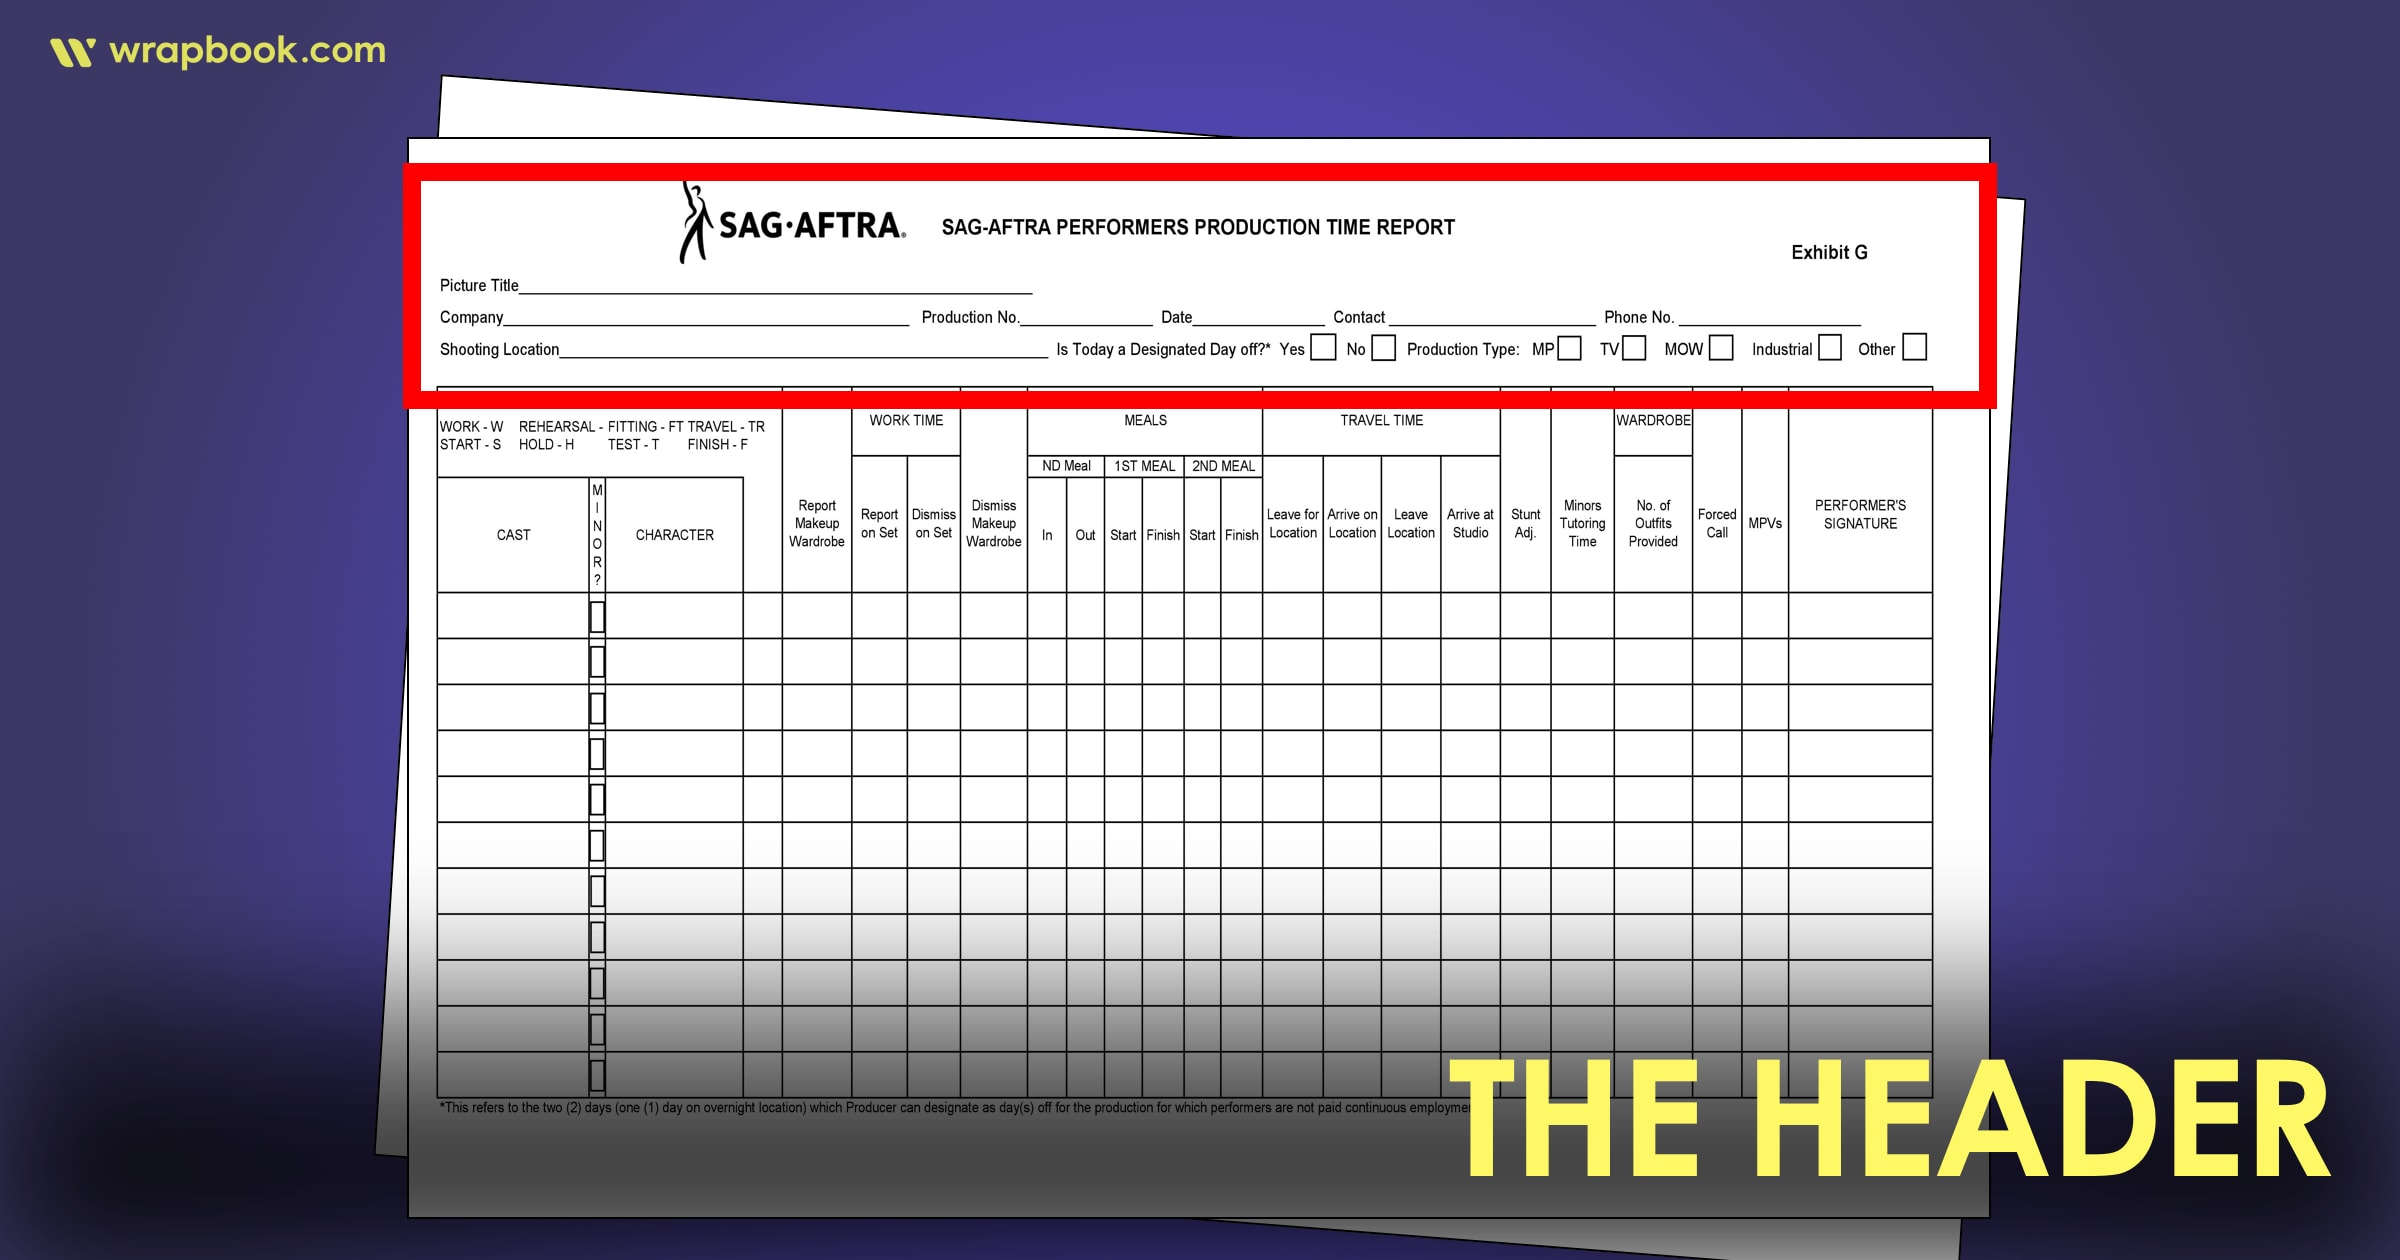 The Header - How to Fill Out The SAG Exhibit G Form